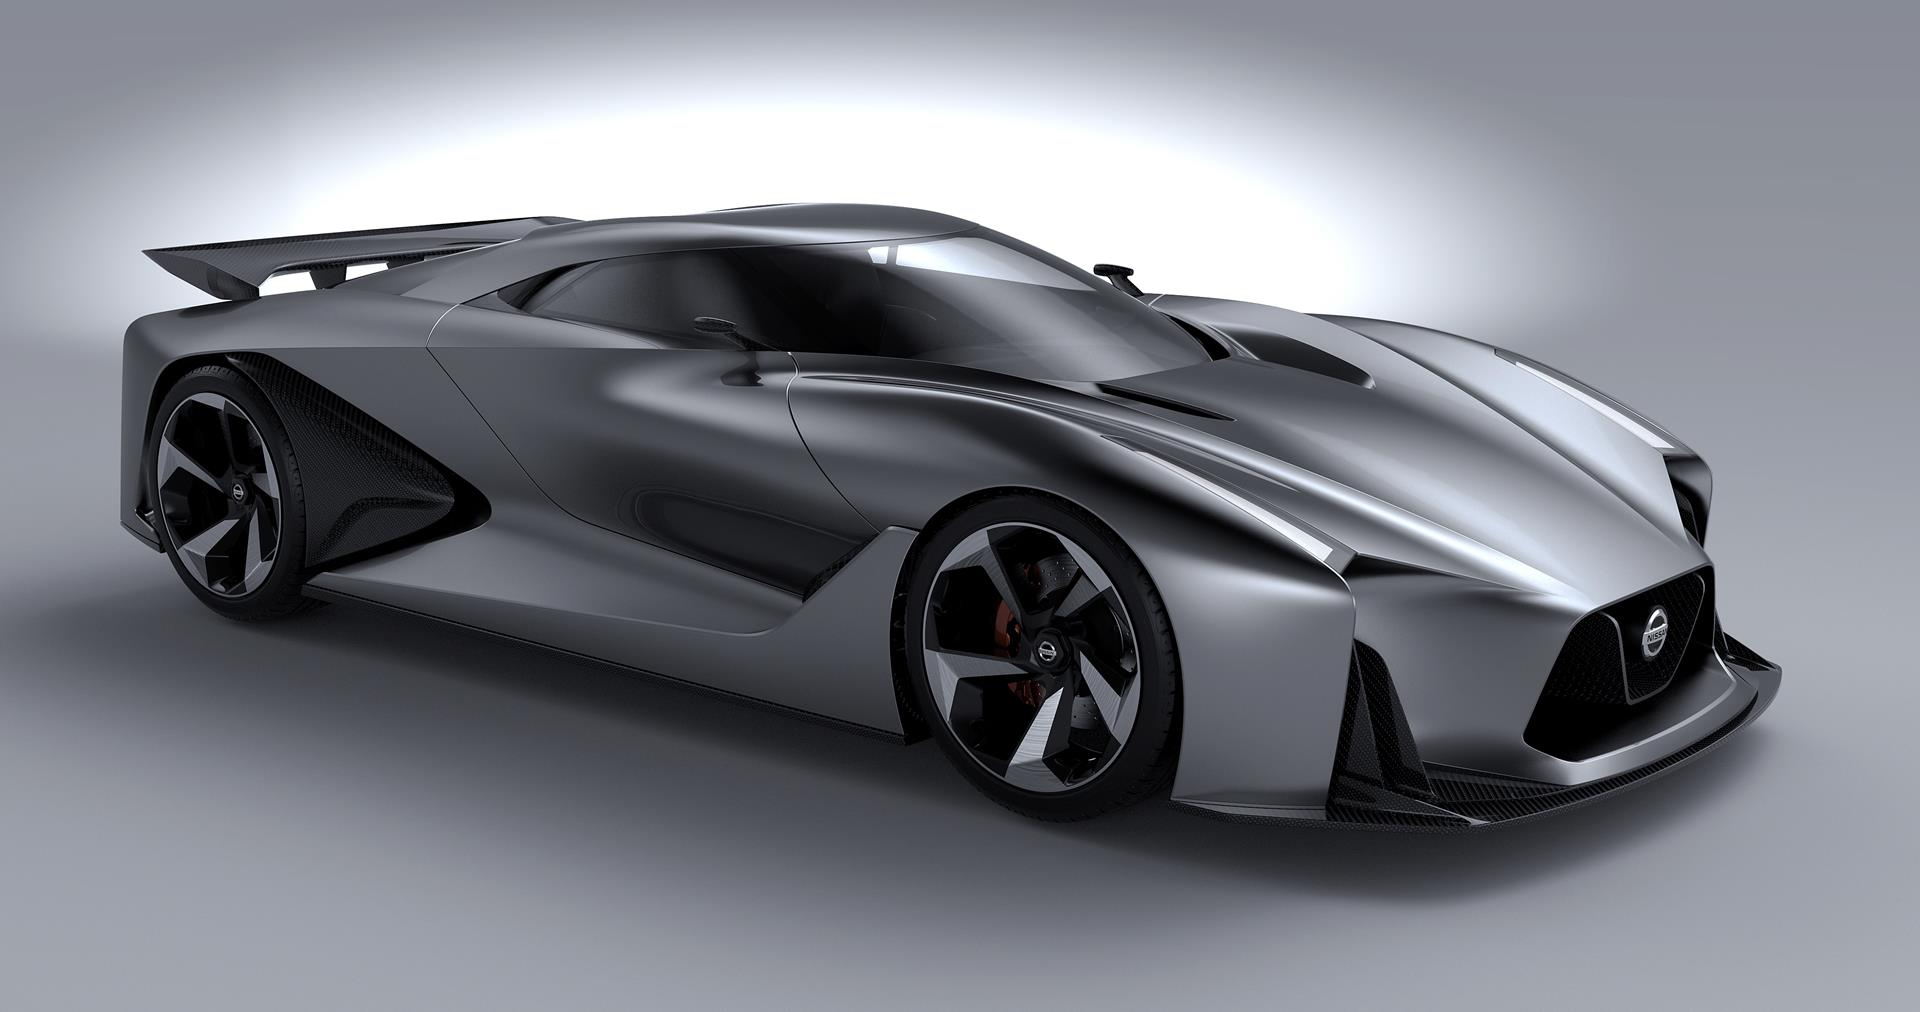 2014 Nissan 2020 Vision Gran Turismo Concept News and ...